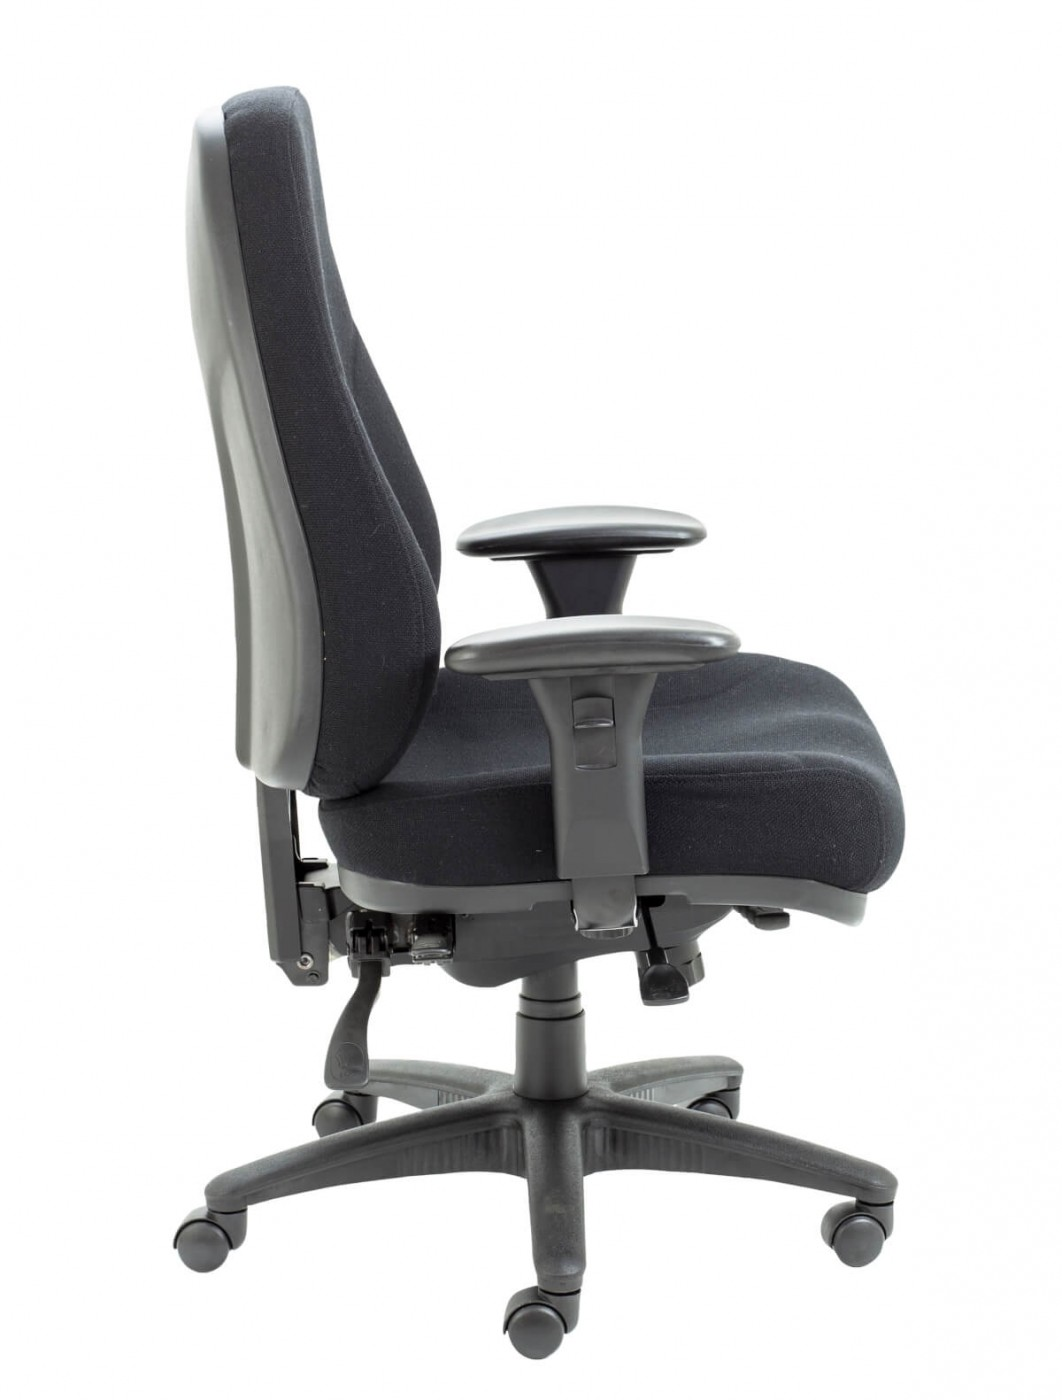 comfort office chair. Office Chairs - Panther 24 Hour Fabric Chair CH1108BK Enlarged View Comfort